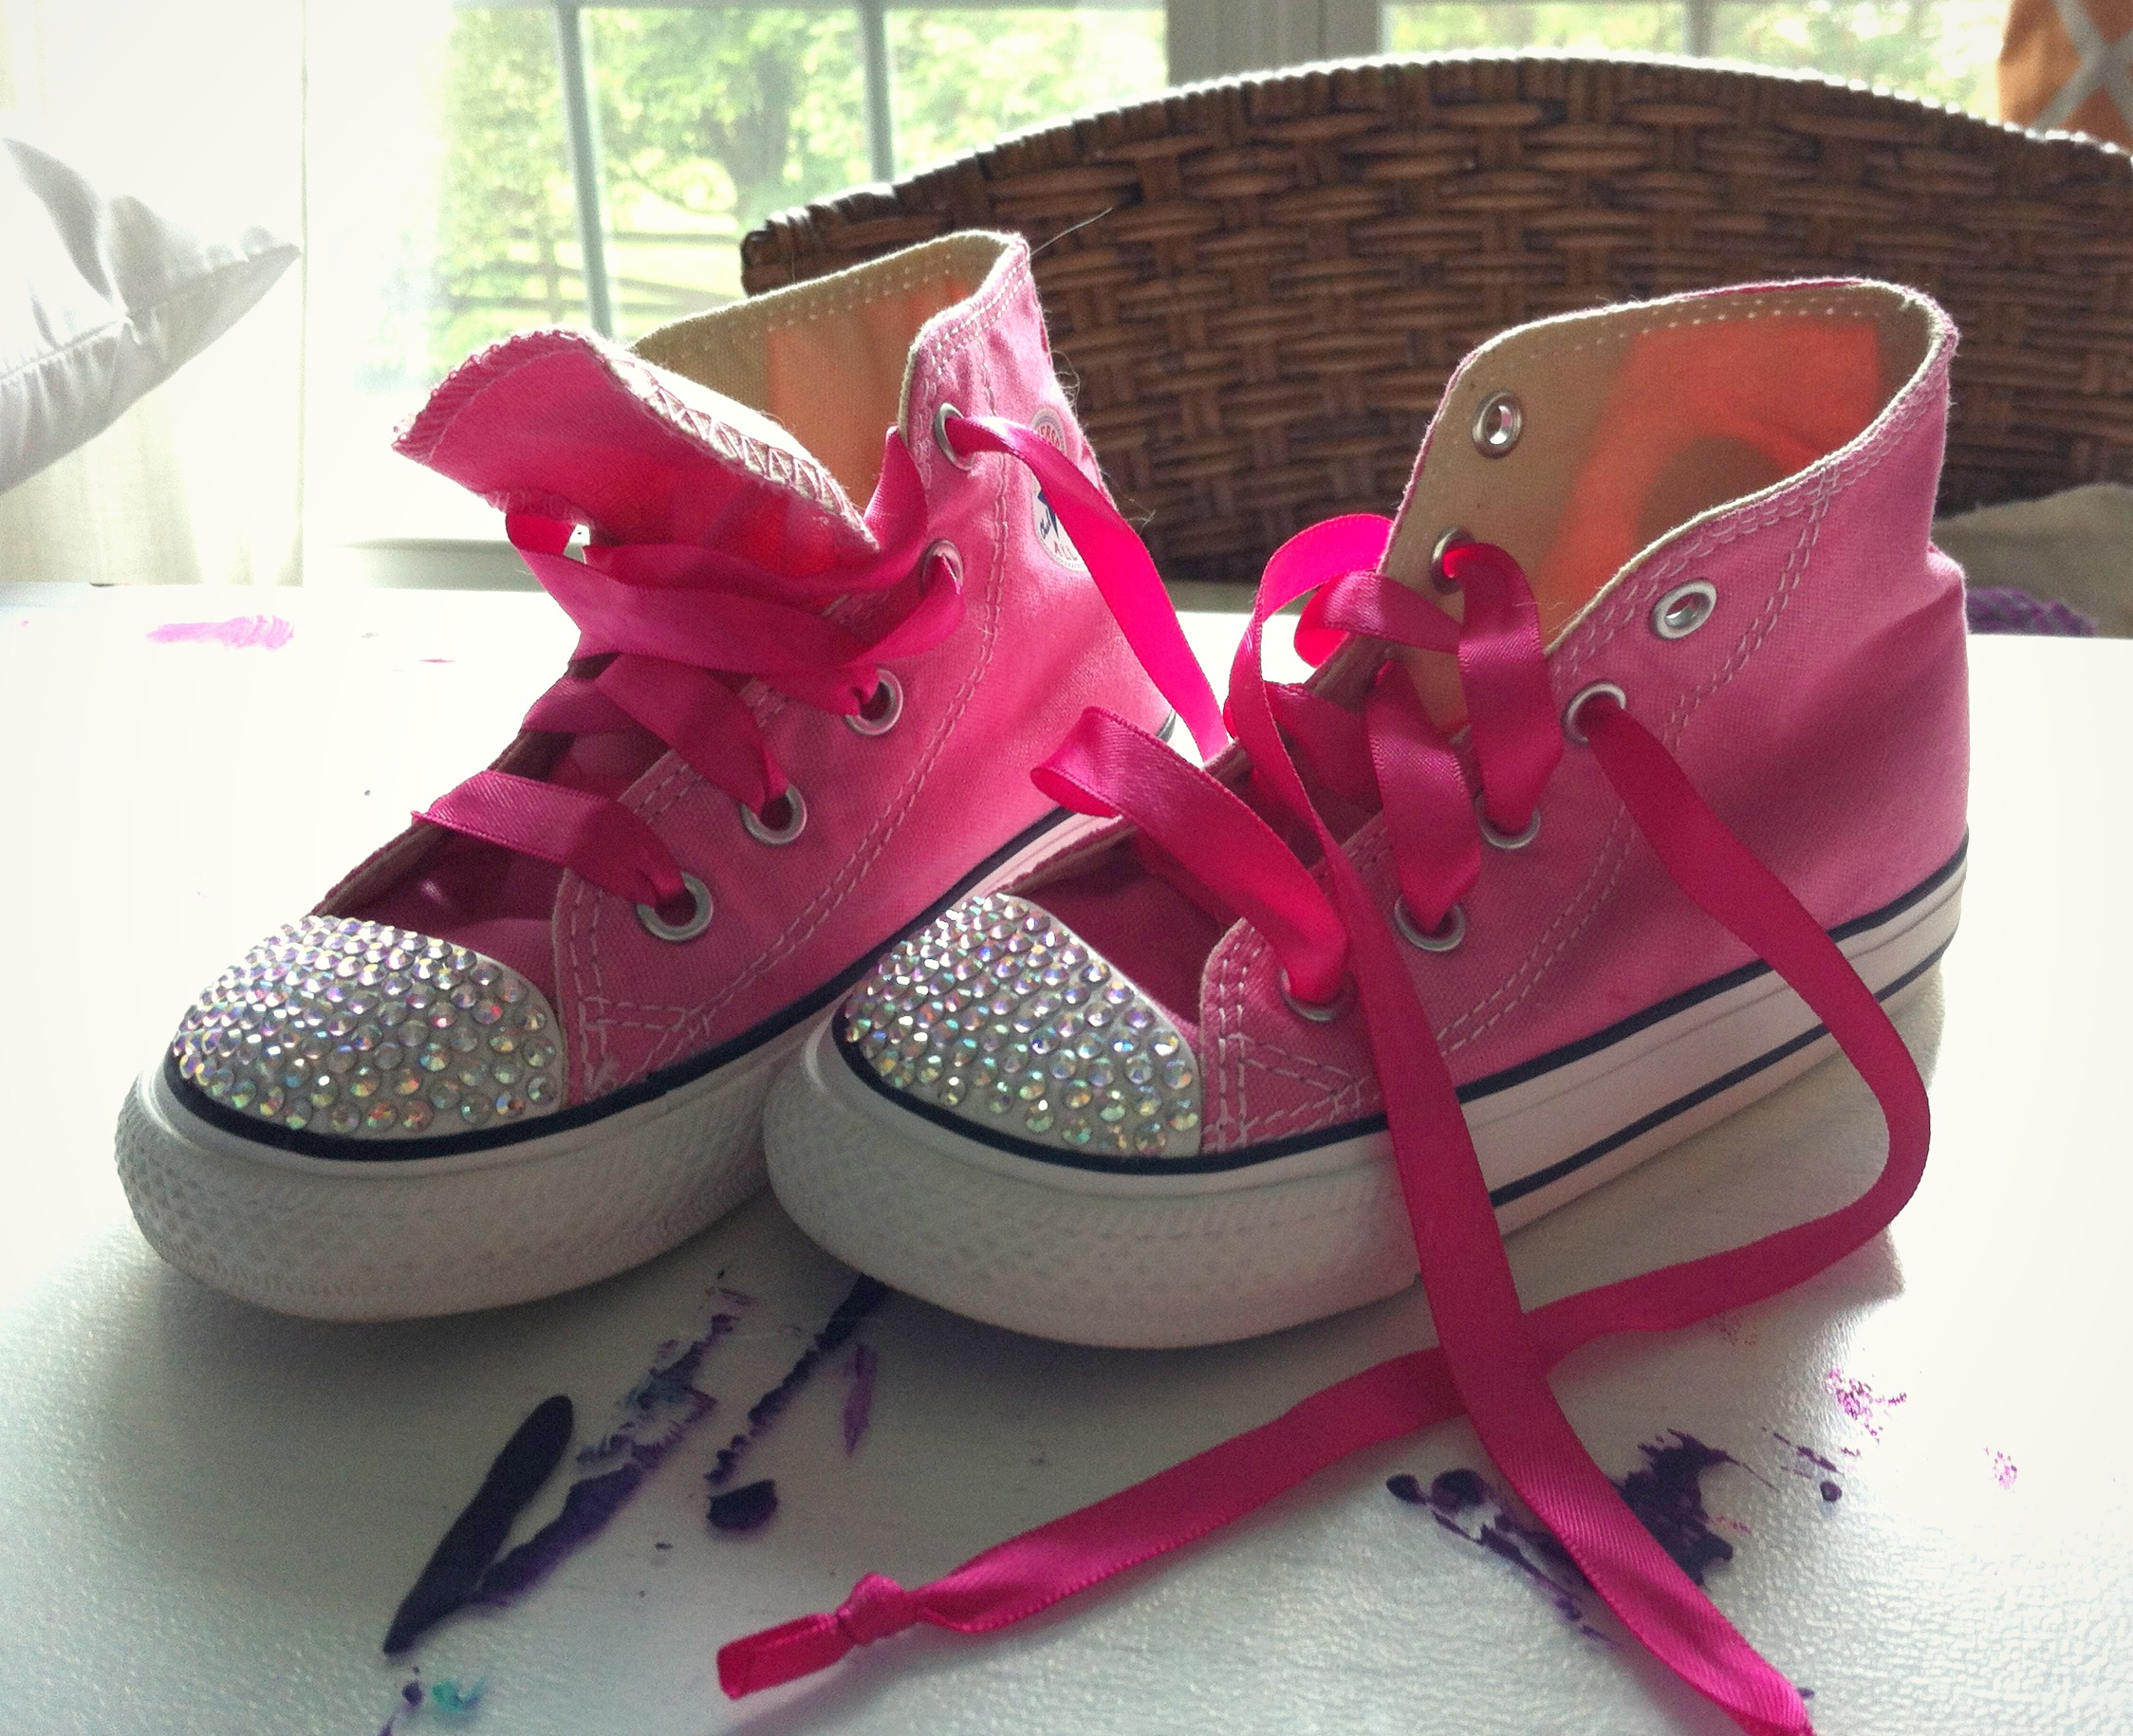 69d47f1fd6a5 Blinged Out Chucks